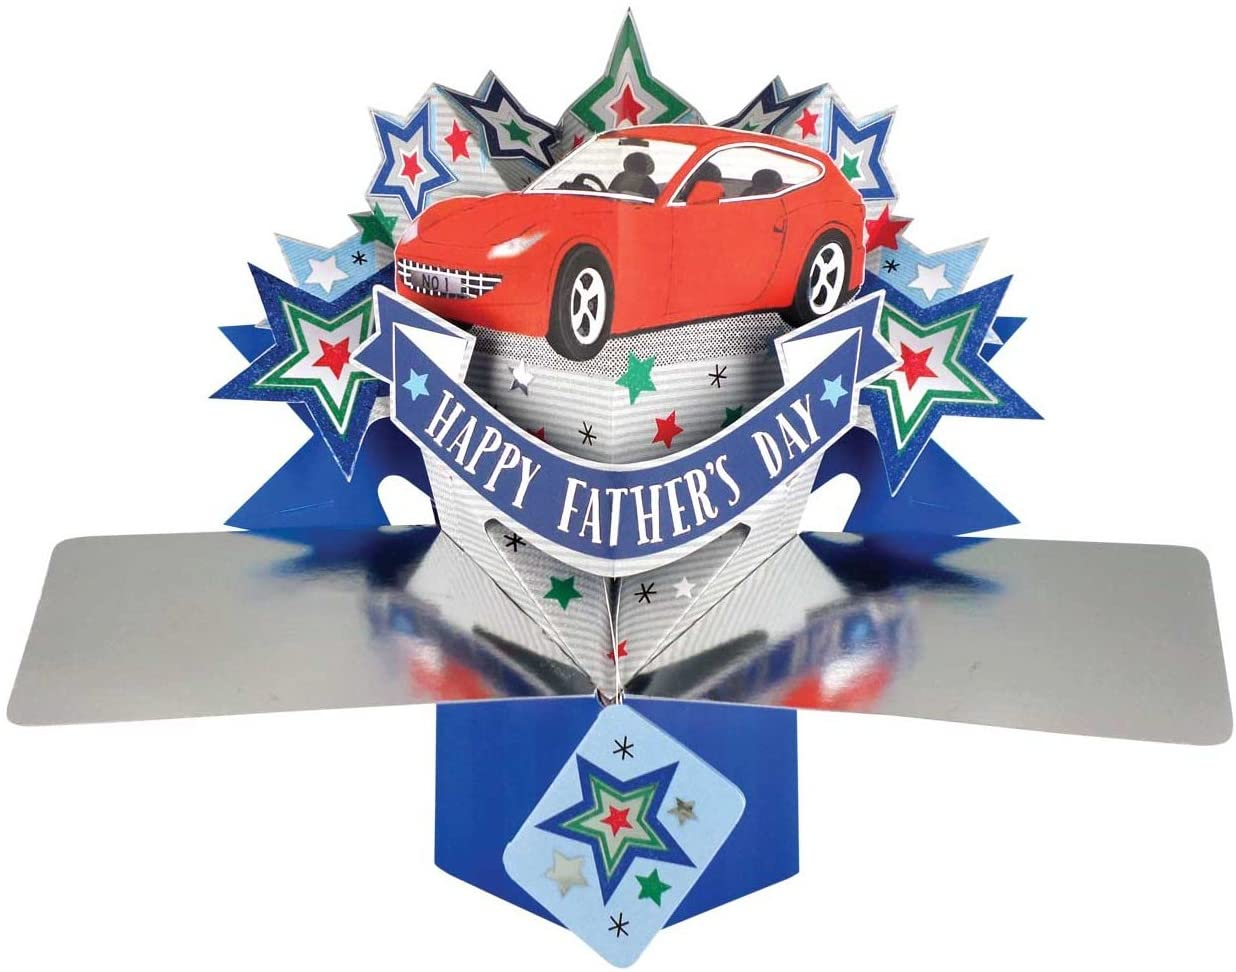 Happy Father's Day Red Car Pop-Up Greeting Card Second Nature 3D Pop Up Cards